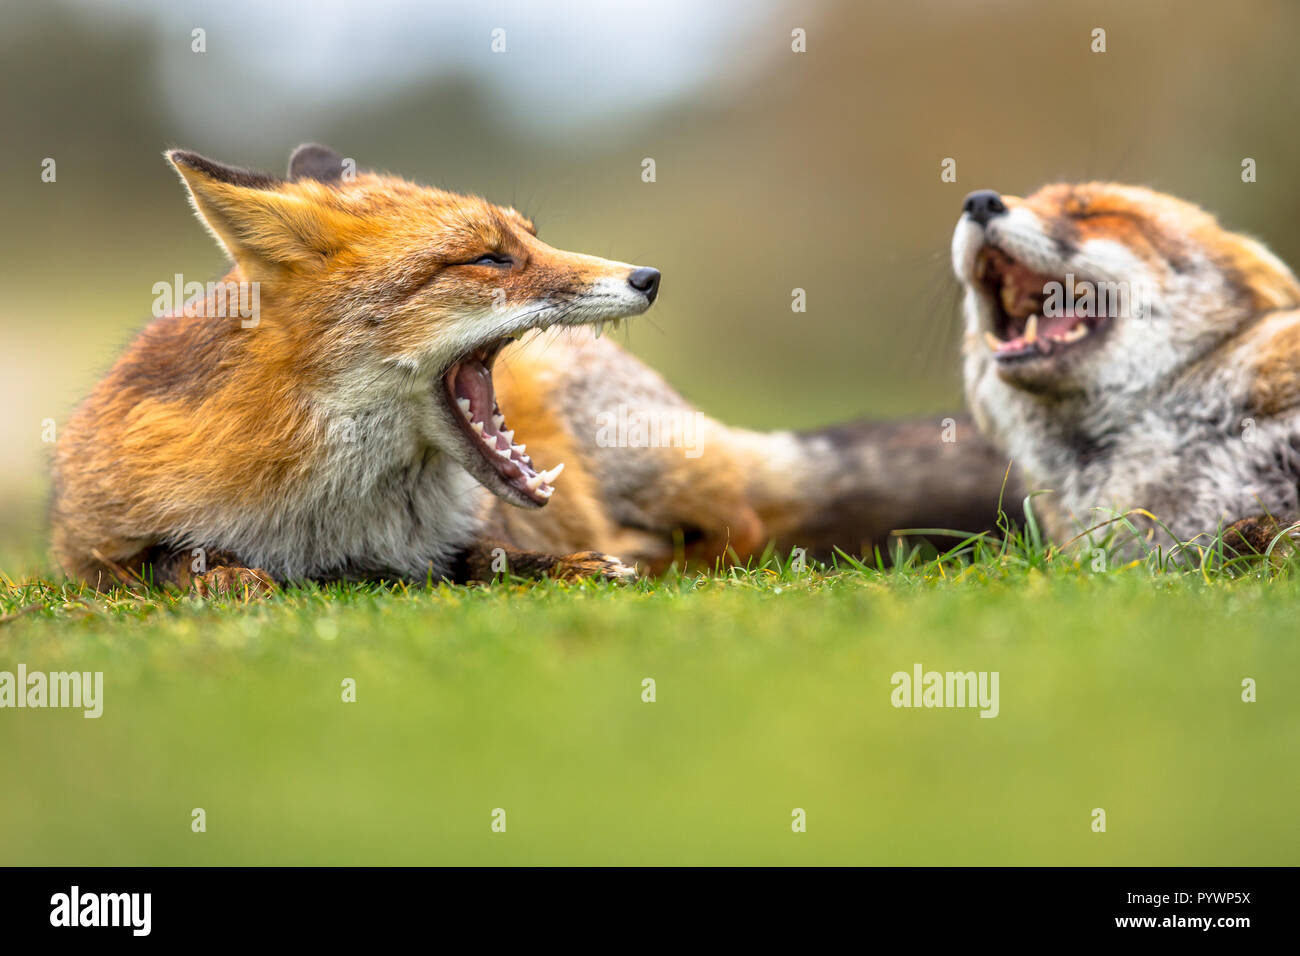 Two European red foxes (Vulpes vulpes) growling to each other in grass. The most abundant wild member of the Carnivora, being present across the entir - Stock Image